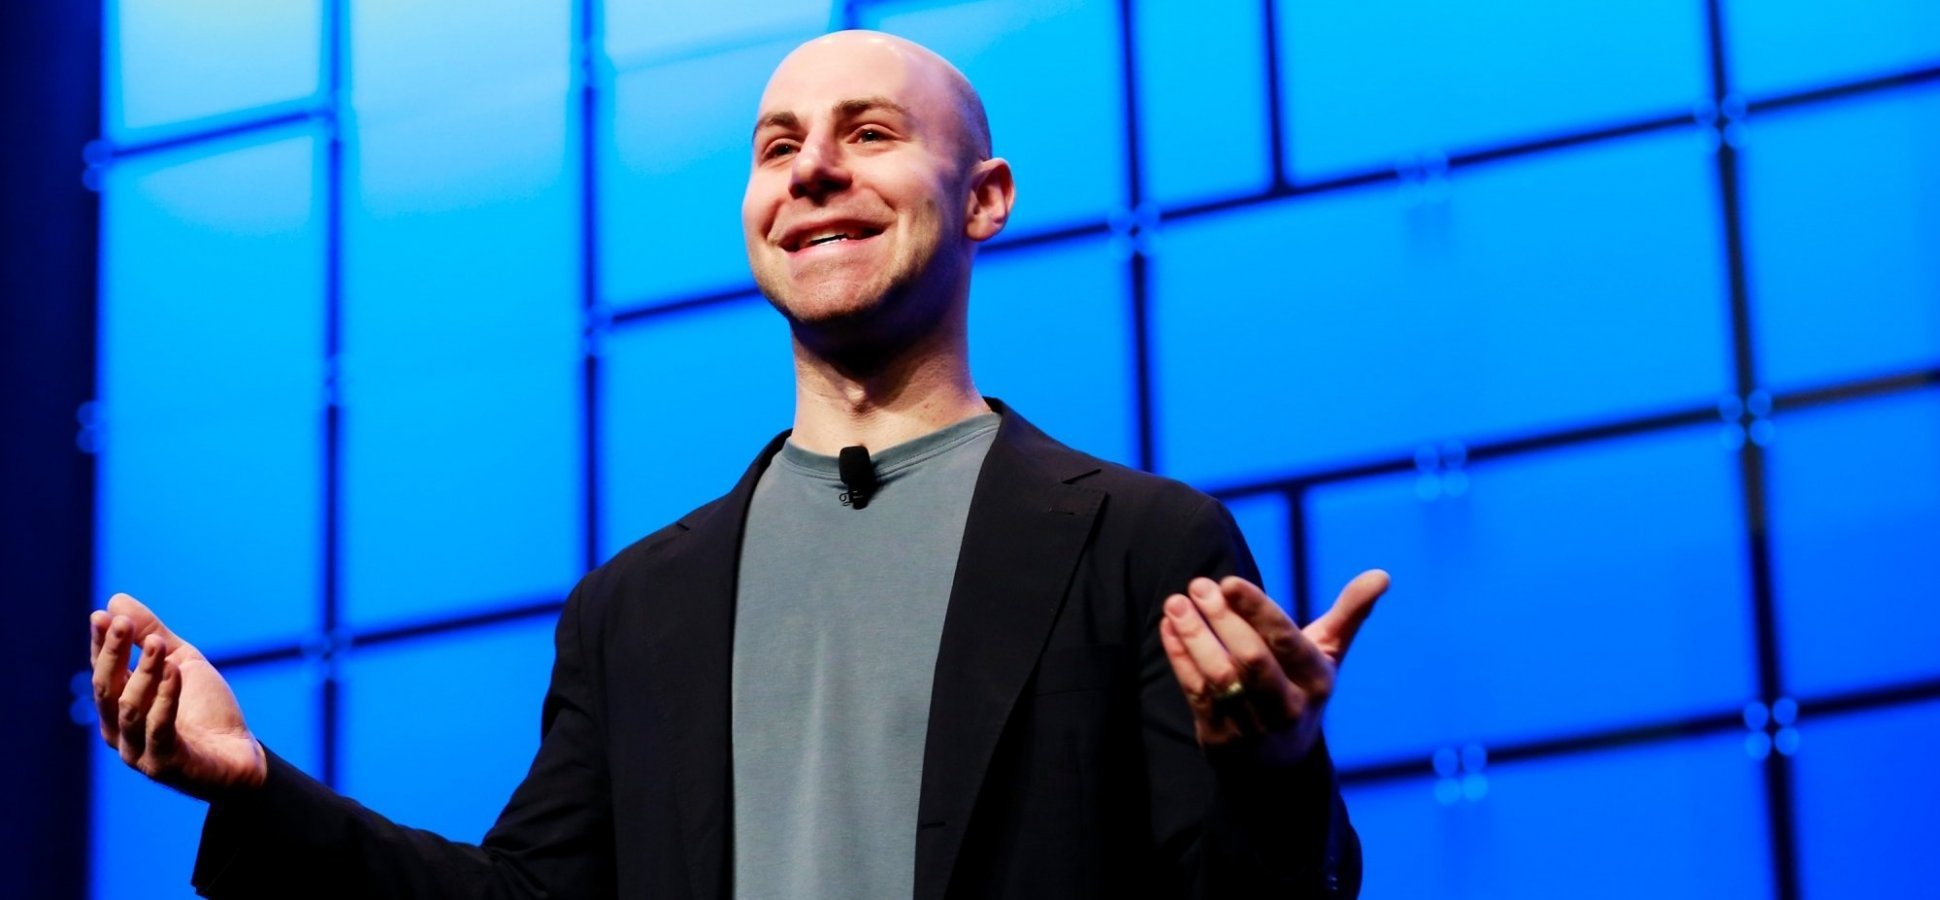 According to Psychologist Adam Grant, This Is the Best Way to Respond to Negative Feedback